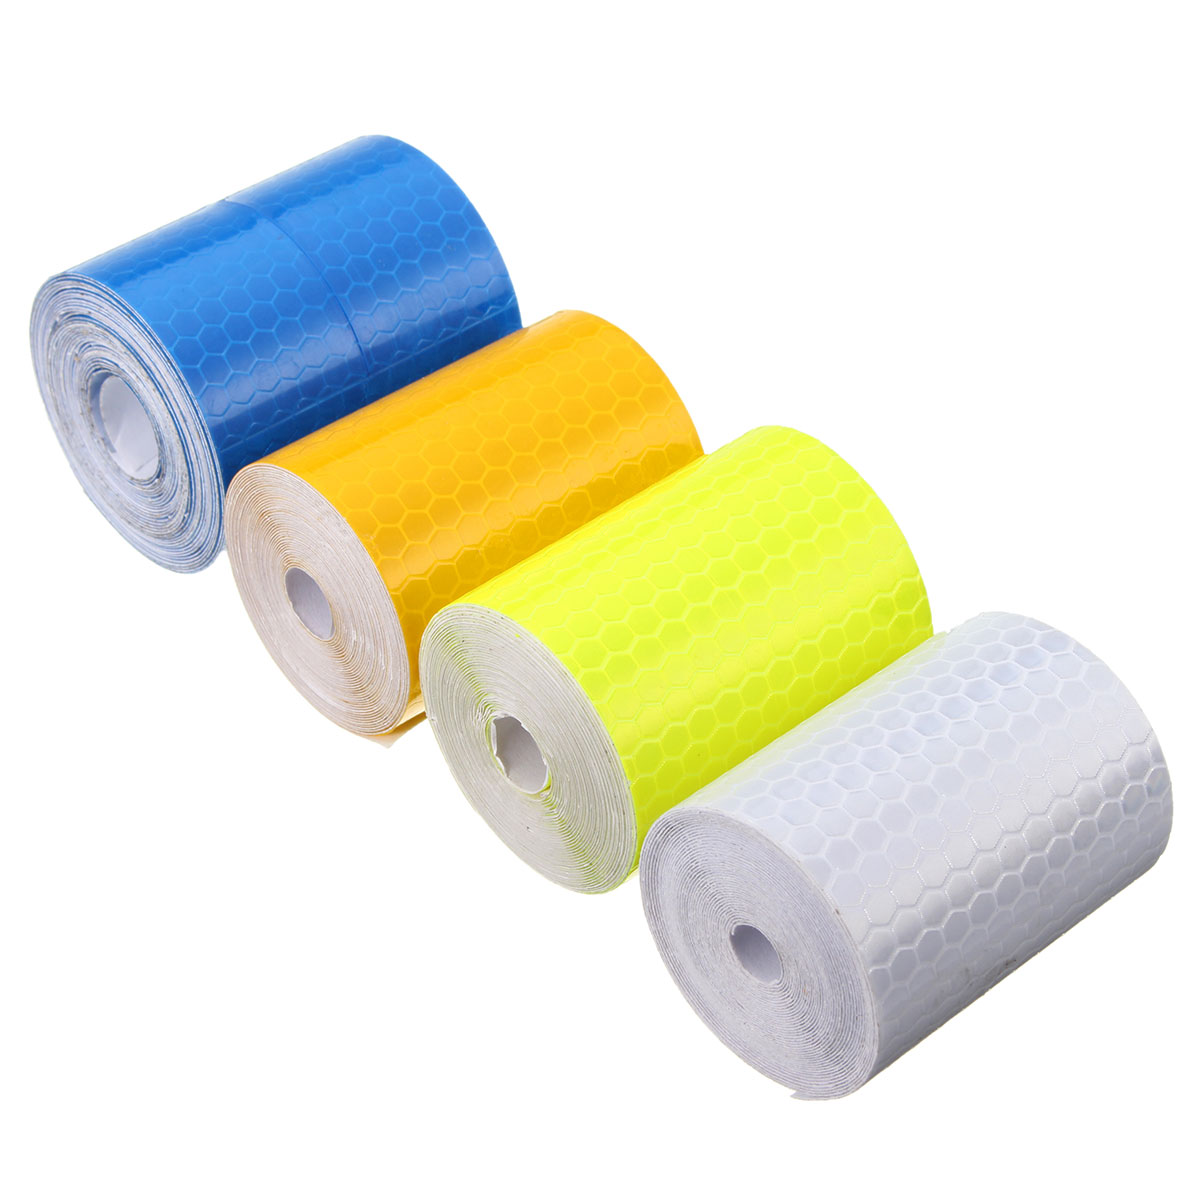 5cm x 300cm Colorful Smooth Surface Water Resistance Reflective Safety Warning Conspicuity Tape Film Sticker 5sheets pack 10cm x 5cm holographic adhesive film fly tying laser rainbow materials sticker film flash tape for fly lure fishing